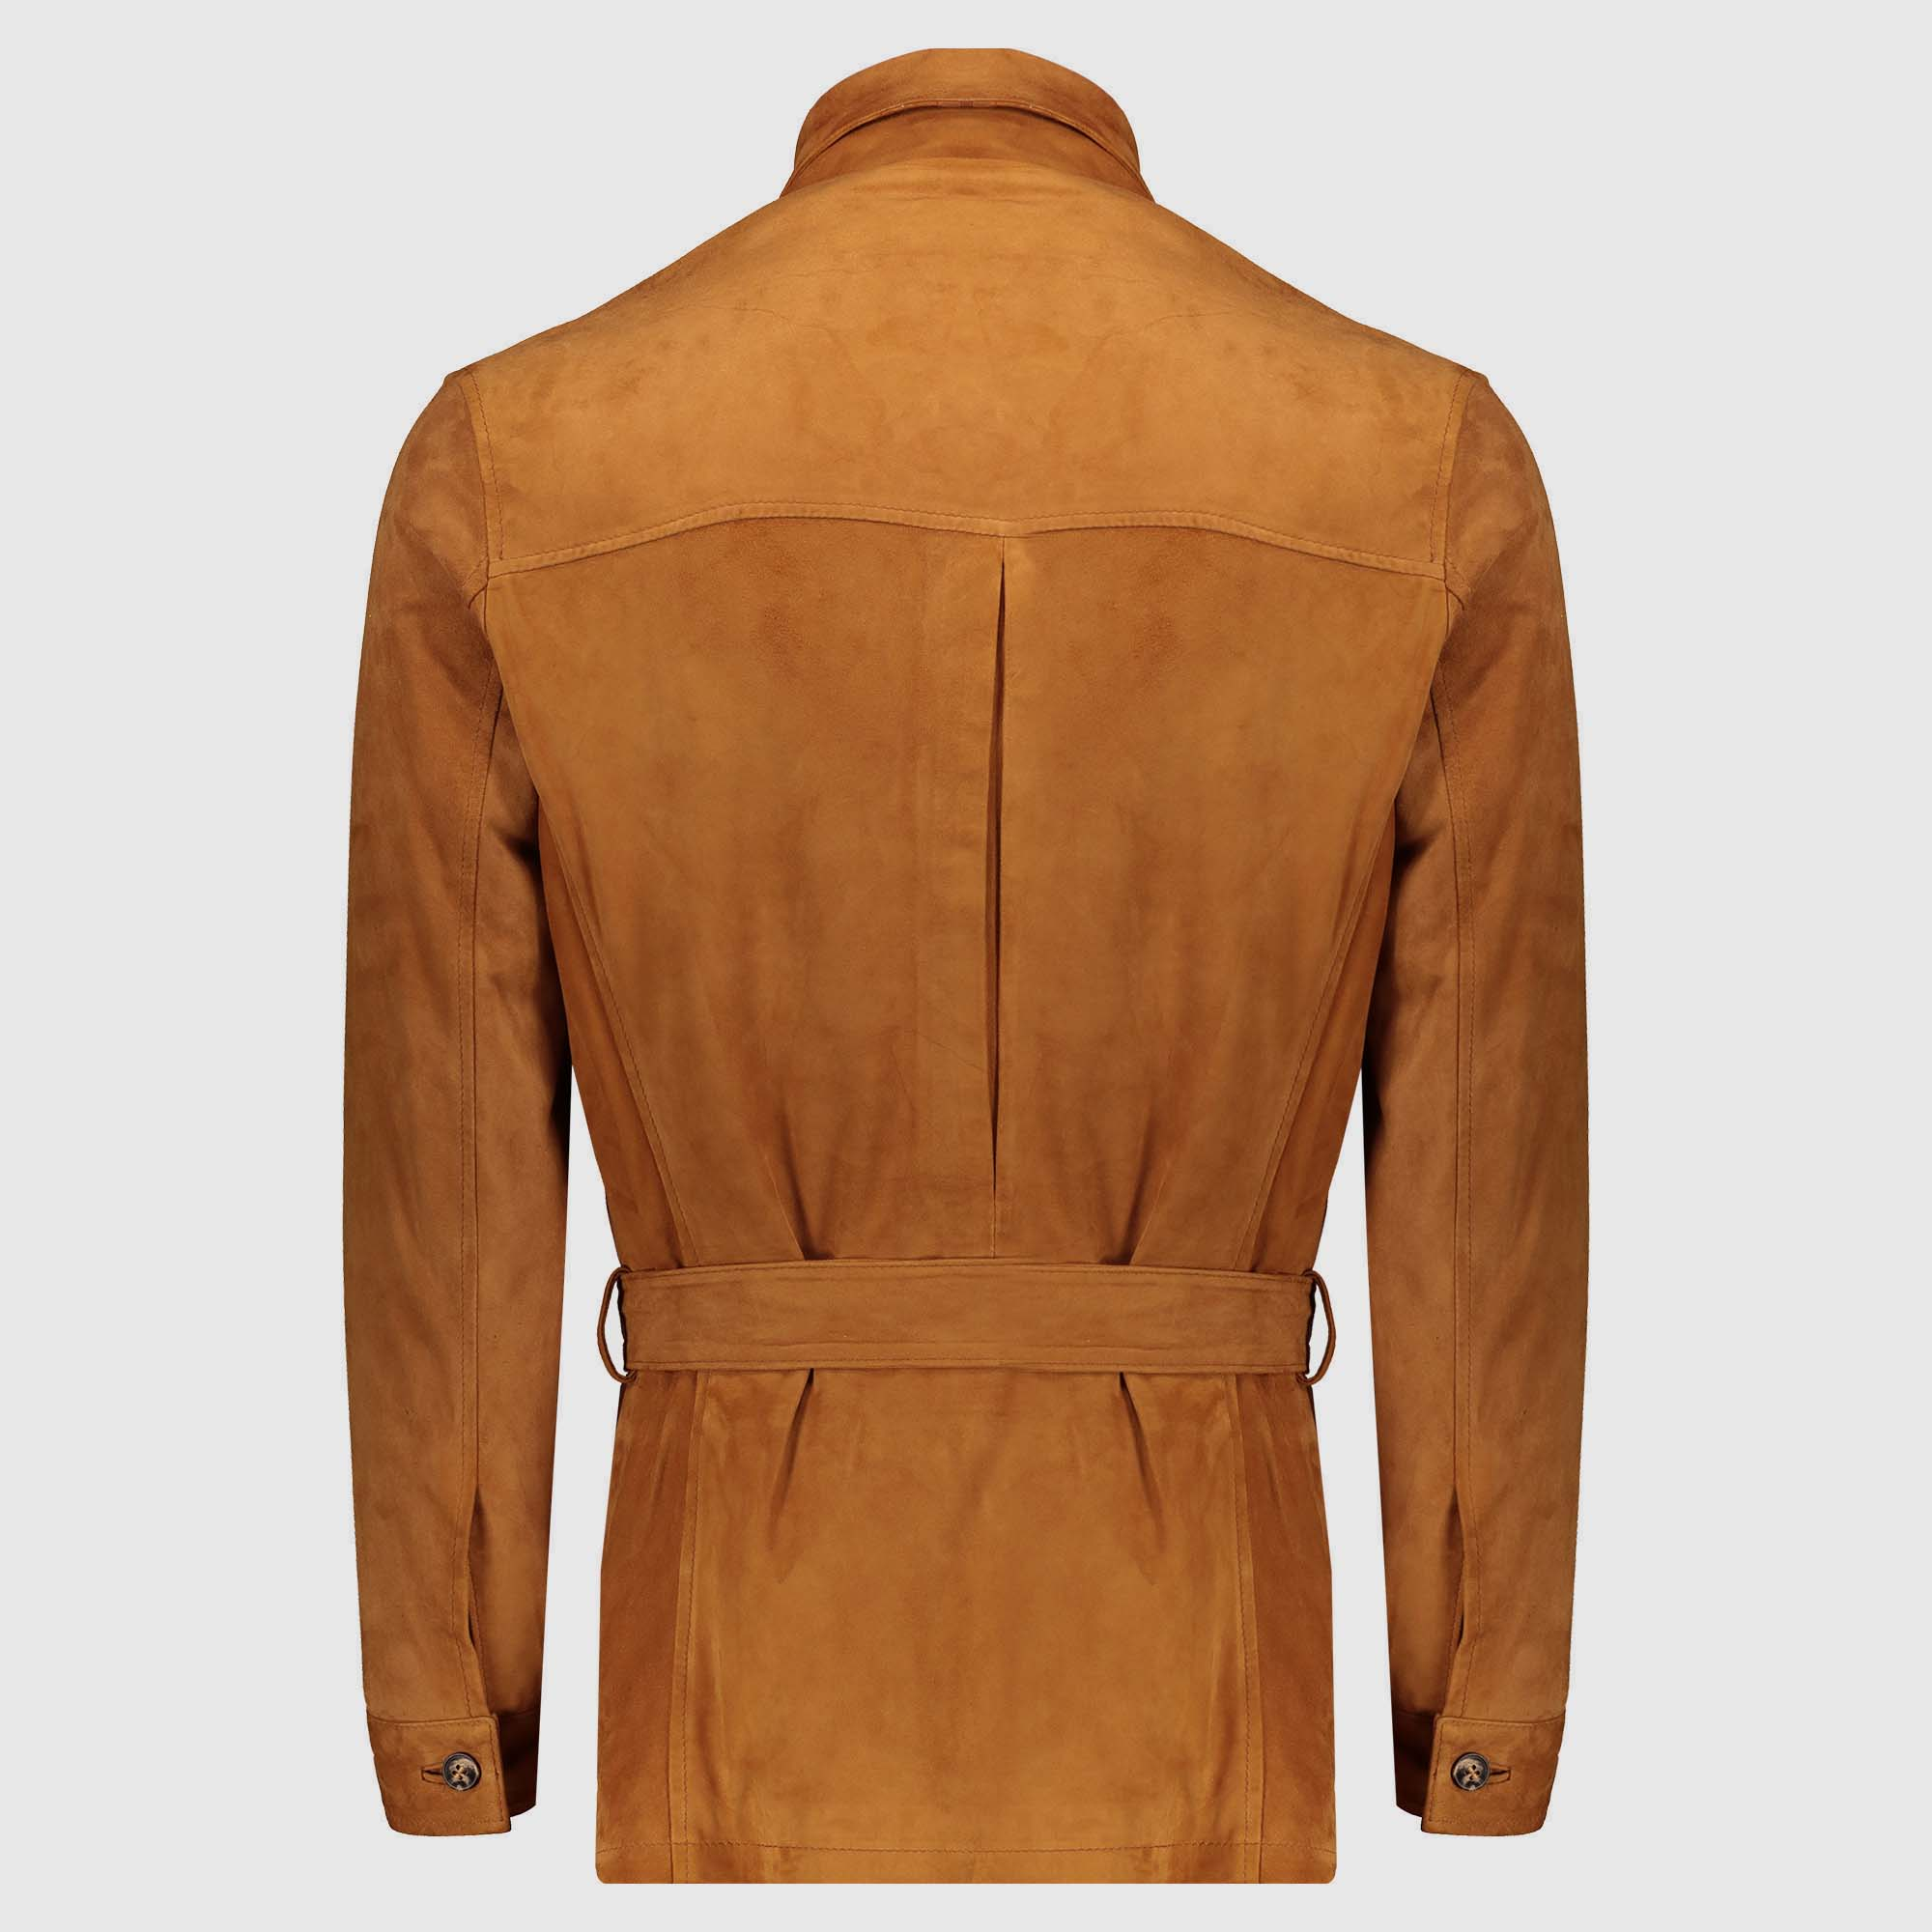 Natural-colored leather suede safari Jacket